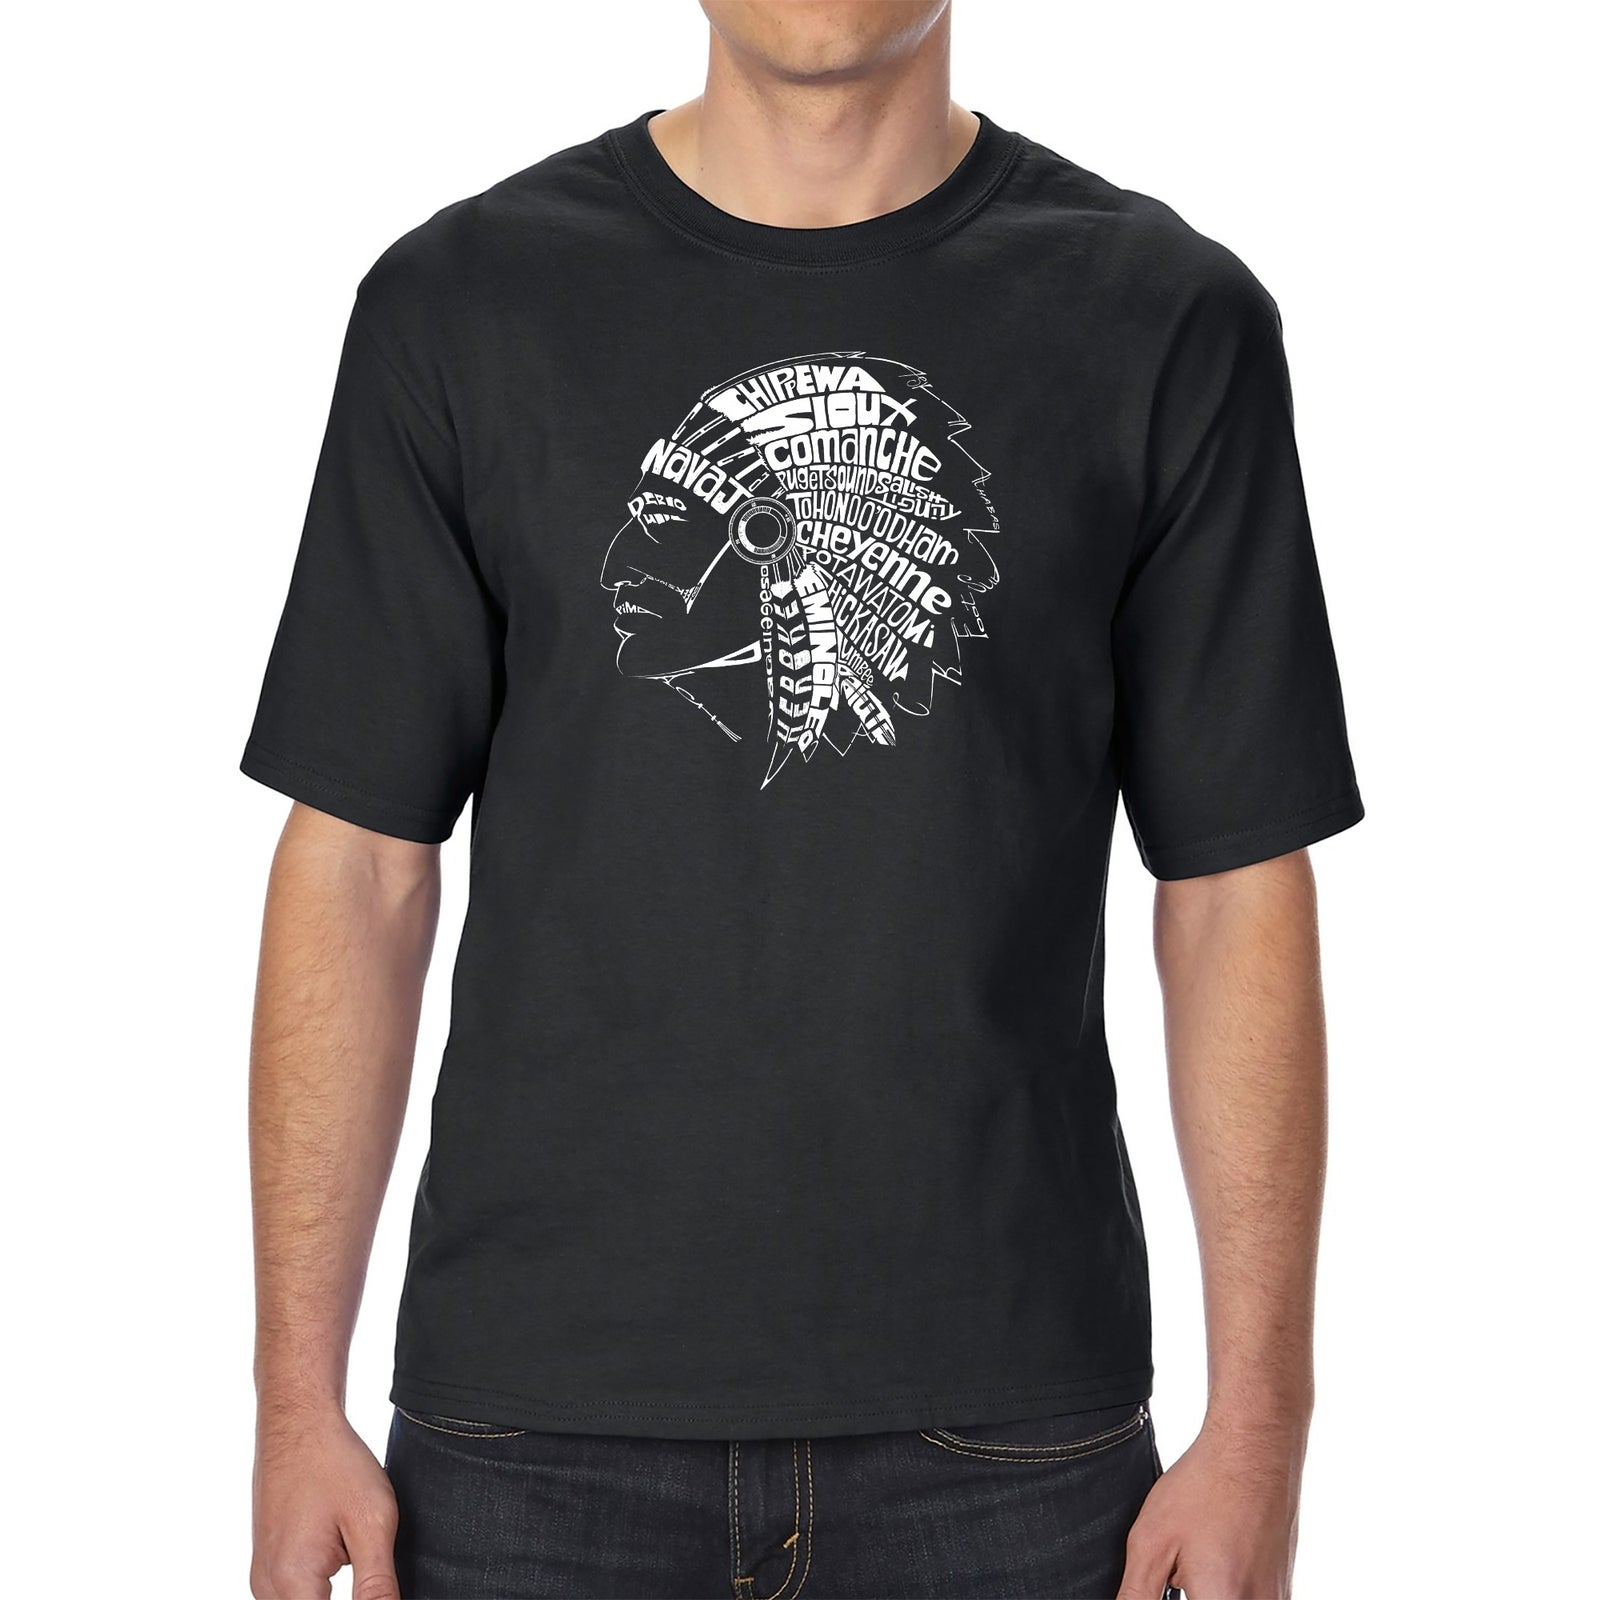 Men's Tall and Long Word Art T-shirt - POPULAR NATIVE AMERICAN INDIAN TRIBES